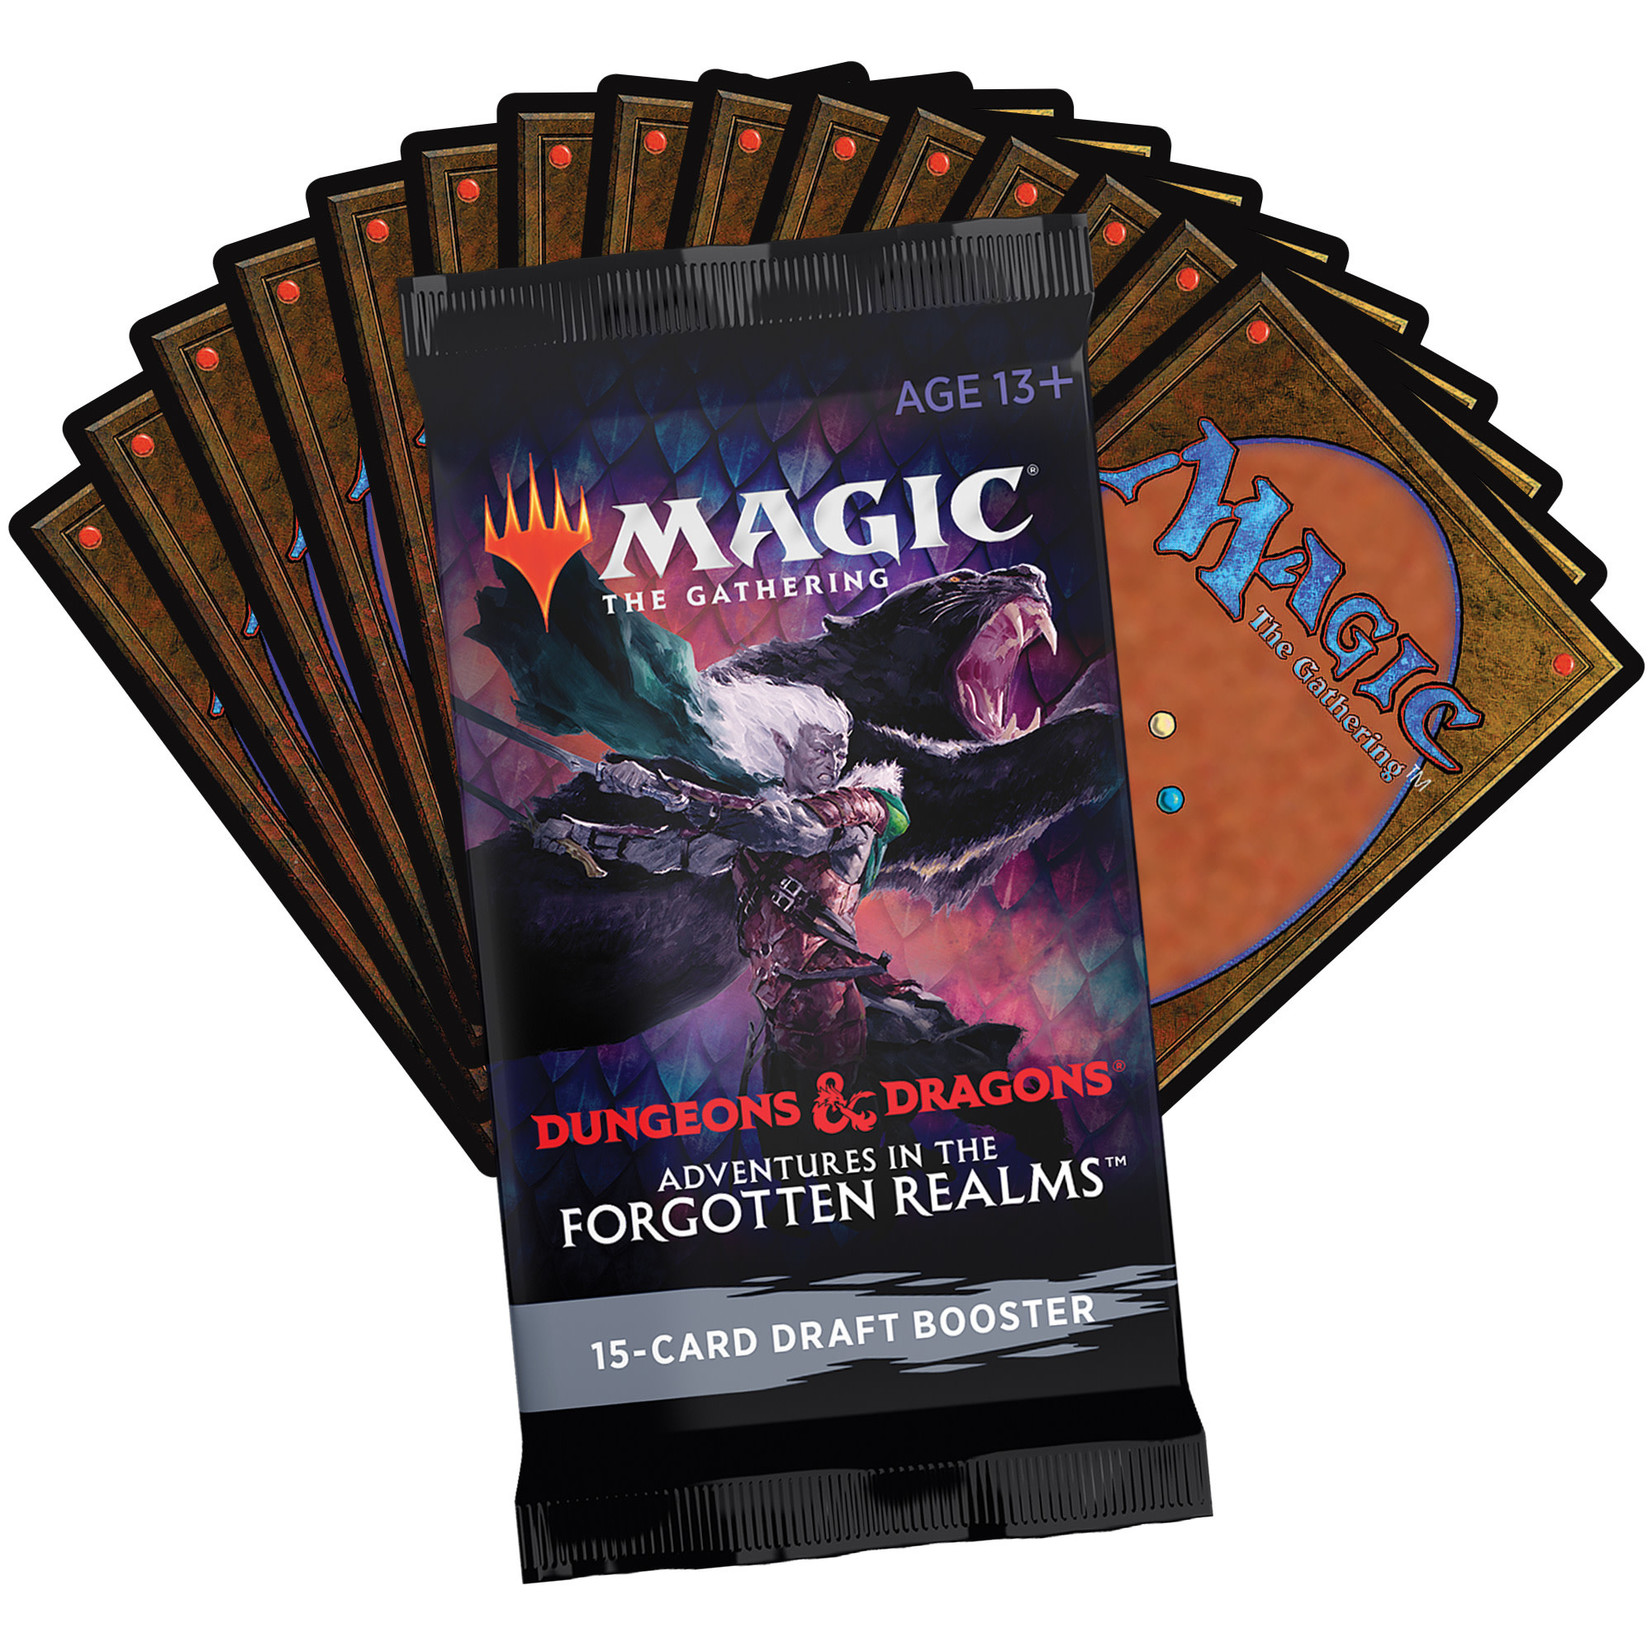 Magic: The Gathering Magic: The Gathering - Adventures in the Forgotten Realms Draft Booster Box